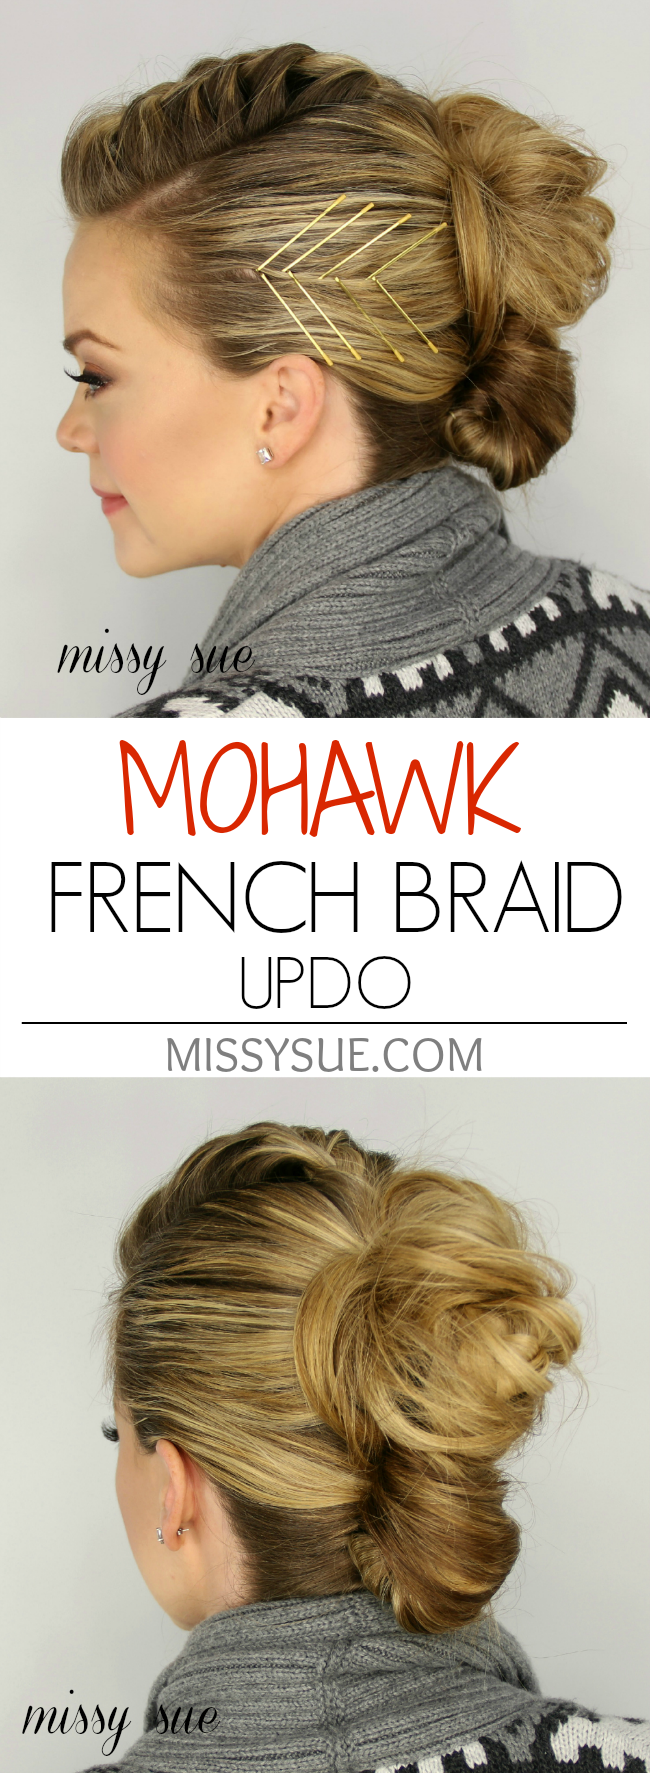 Mohawk french braid updo hairstyles pinterest french braid